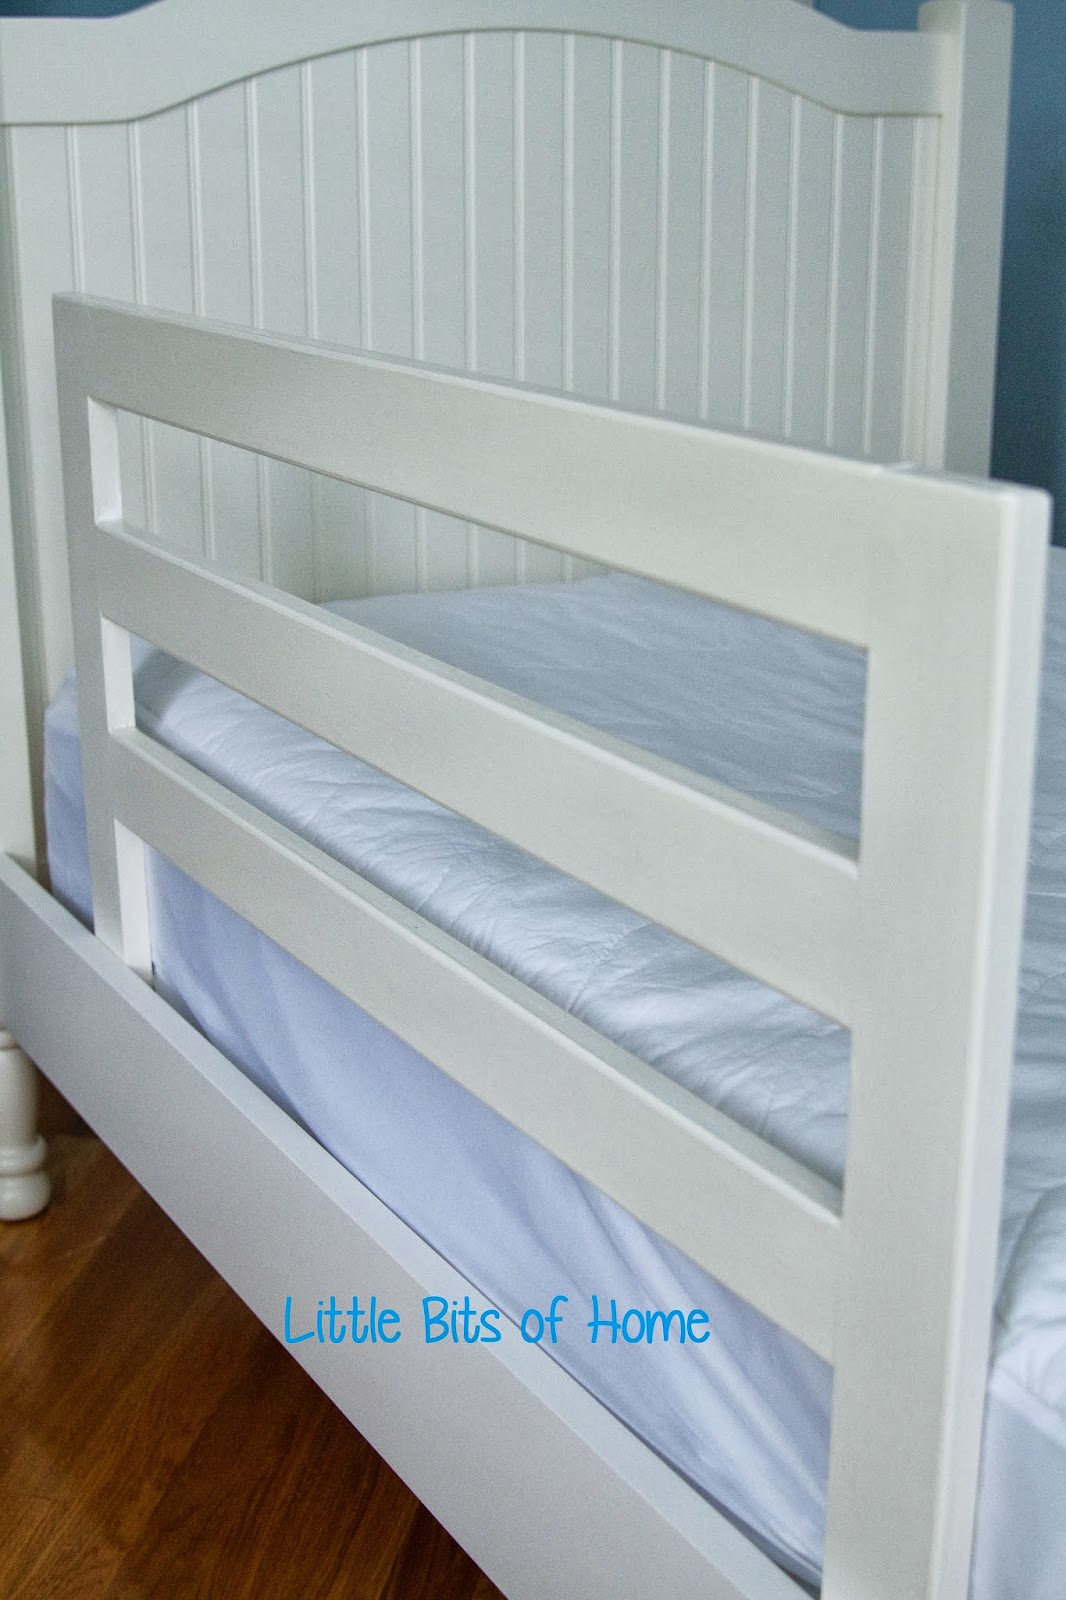 10 Best Bed Rails for Thick Mattresses in 2019